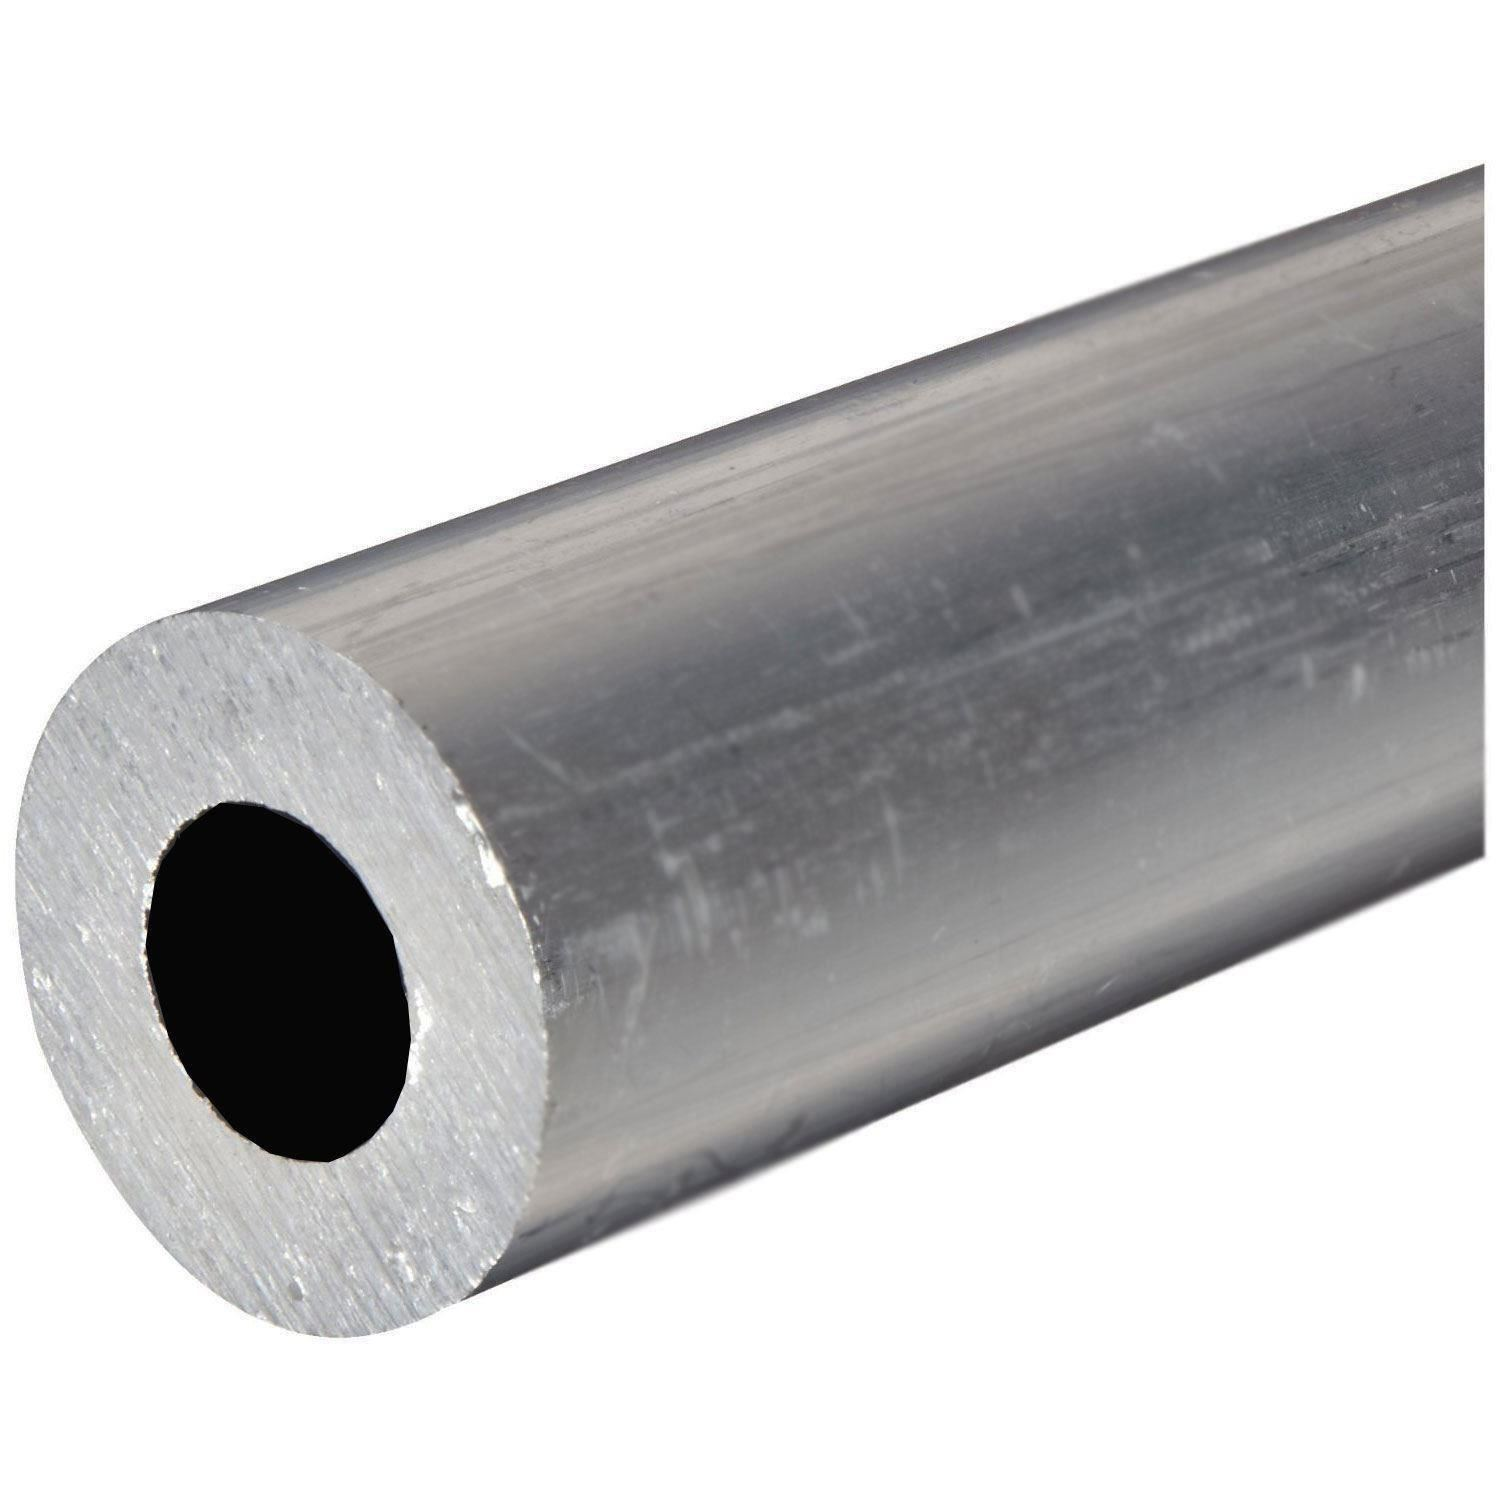 Aluminum tube weight of t